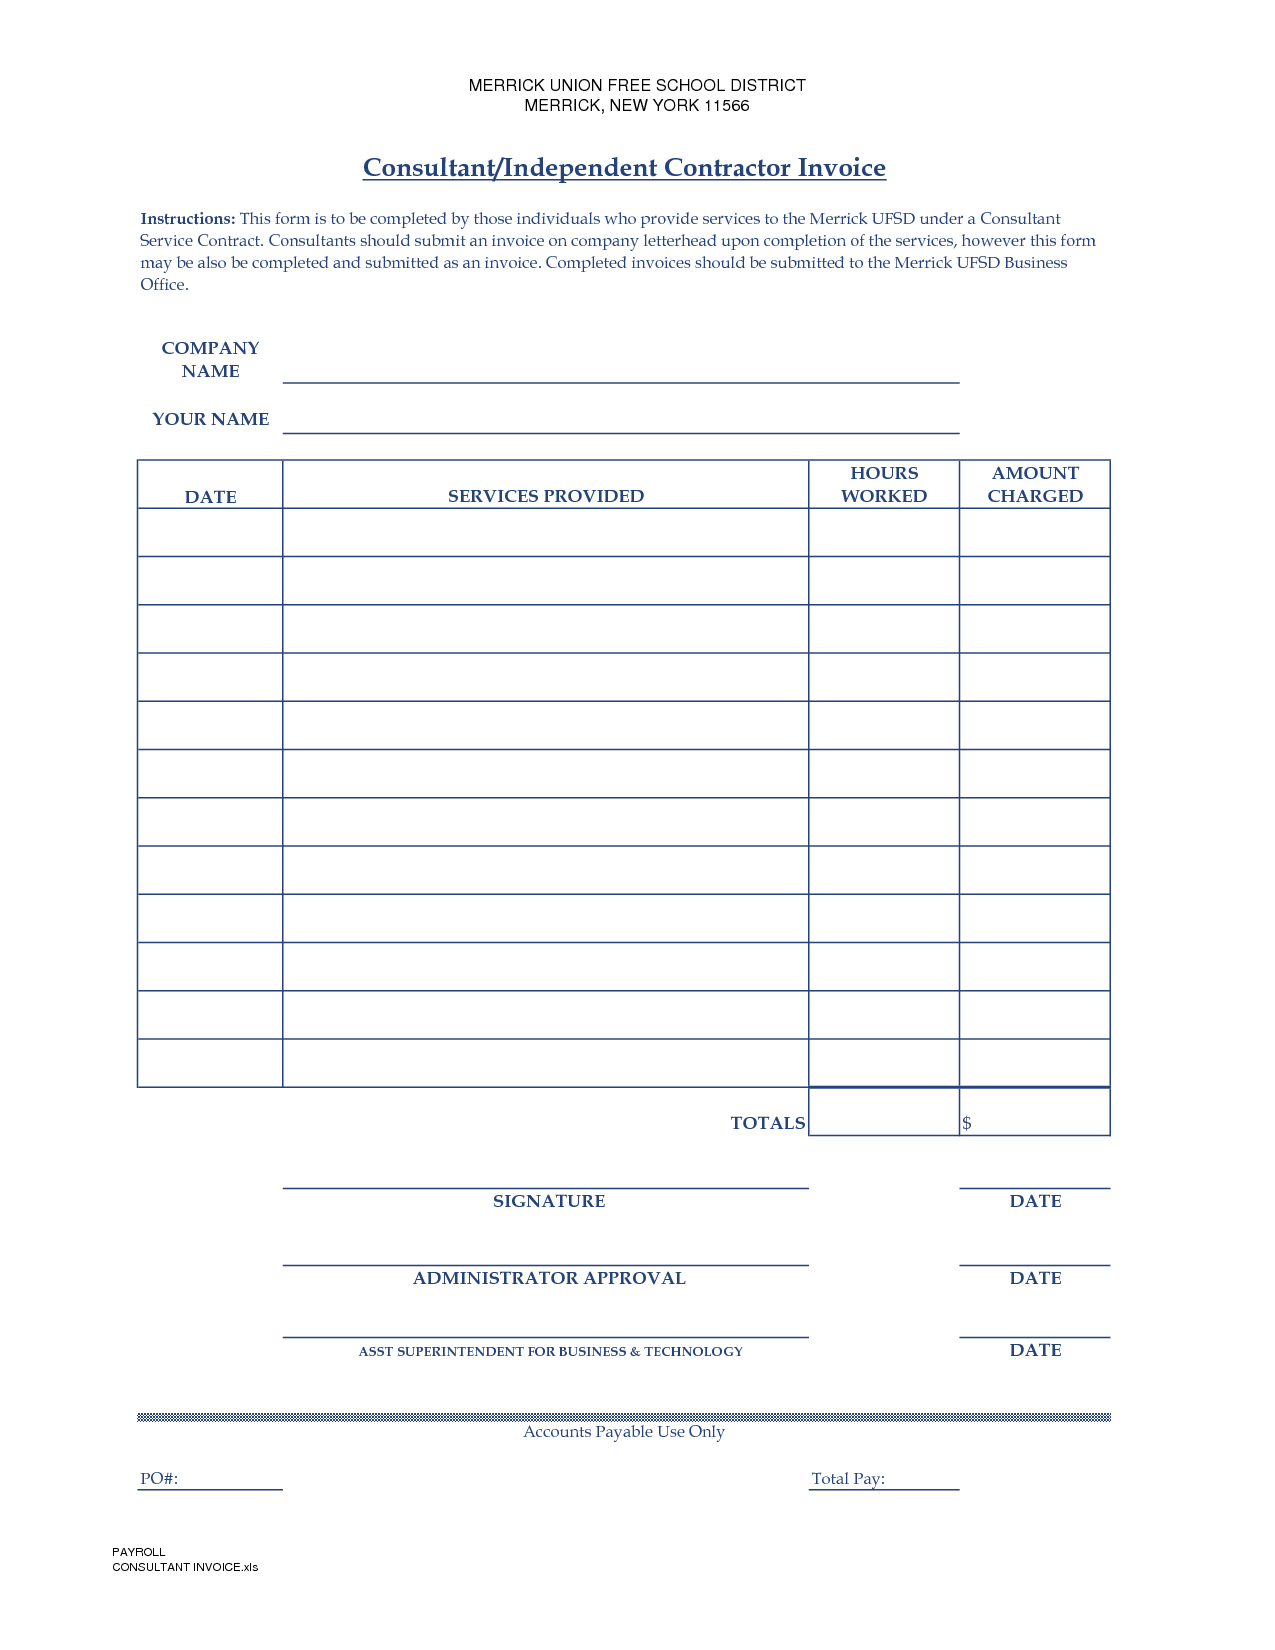 independent contractor invoice template invoice example independent contractor invoice template independent contractor invoice template excel microsoft word software 2013 ms gqpdvl